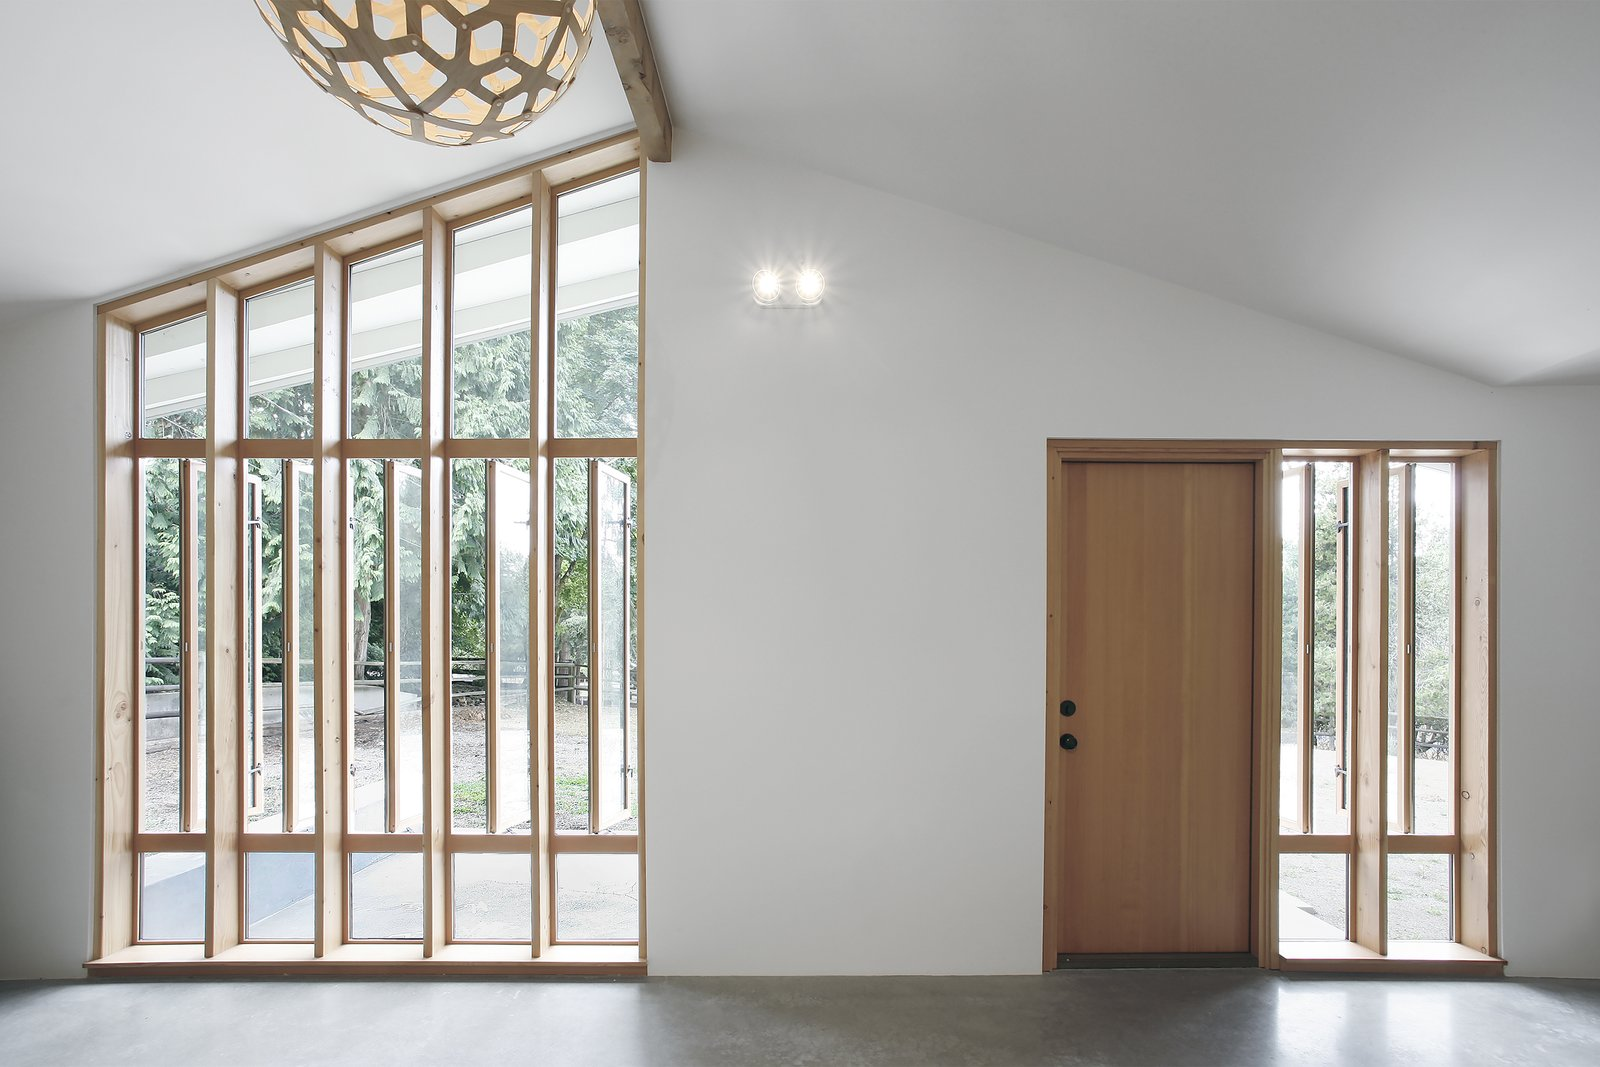 """""""The bank of full-height windows brings in tons of southern light, but it also gives the stable a strong street presence, and it ties into the stick-built window pattern already established at the entry to the main house,"""" Schaer says. The locally-sourced Douglas fir windows and doors were provided by Lindal Cedar Homes.  Horse Stable Studio by Kelly Dawson"""